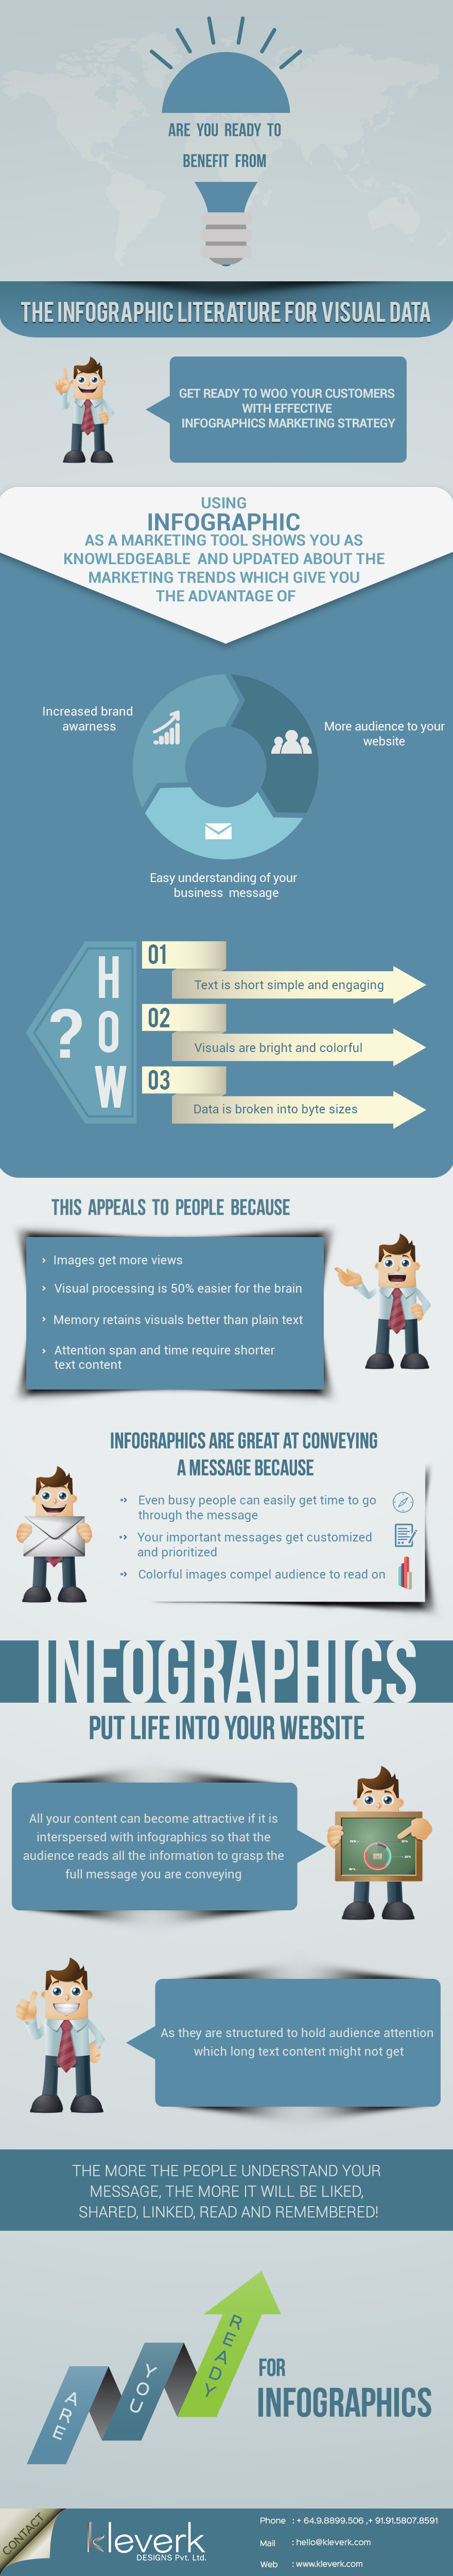 How to Effectively Use Infographics as a Marketing Strategy